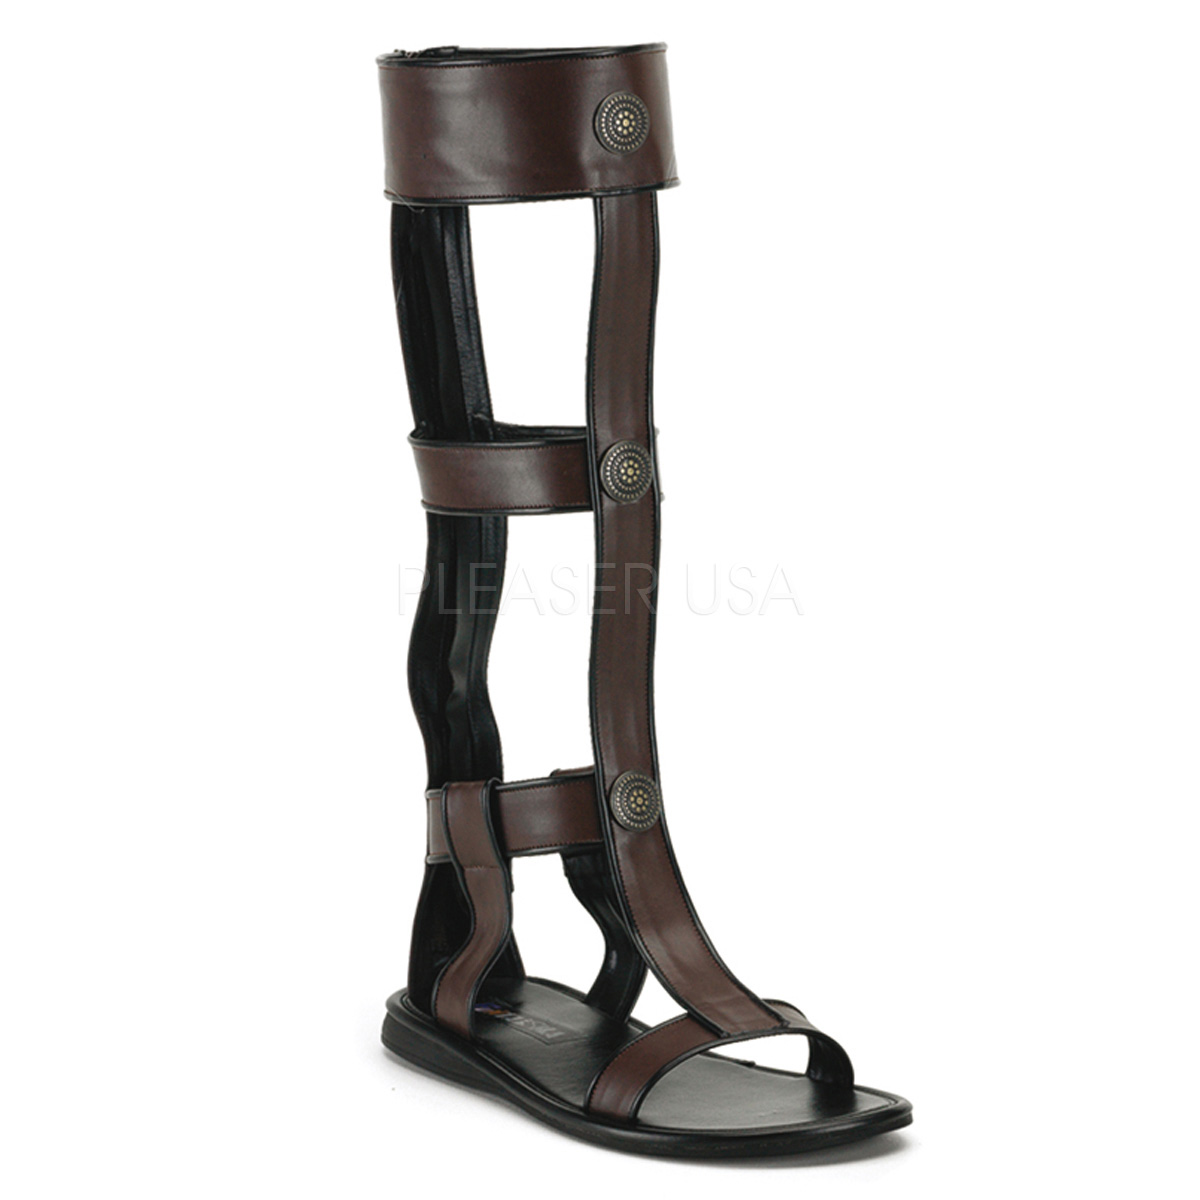 Mens Roman Gladiator Sandals Wear It Out